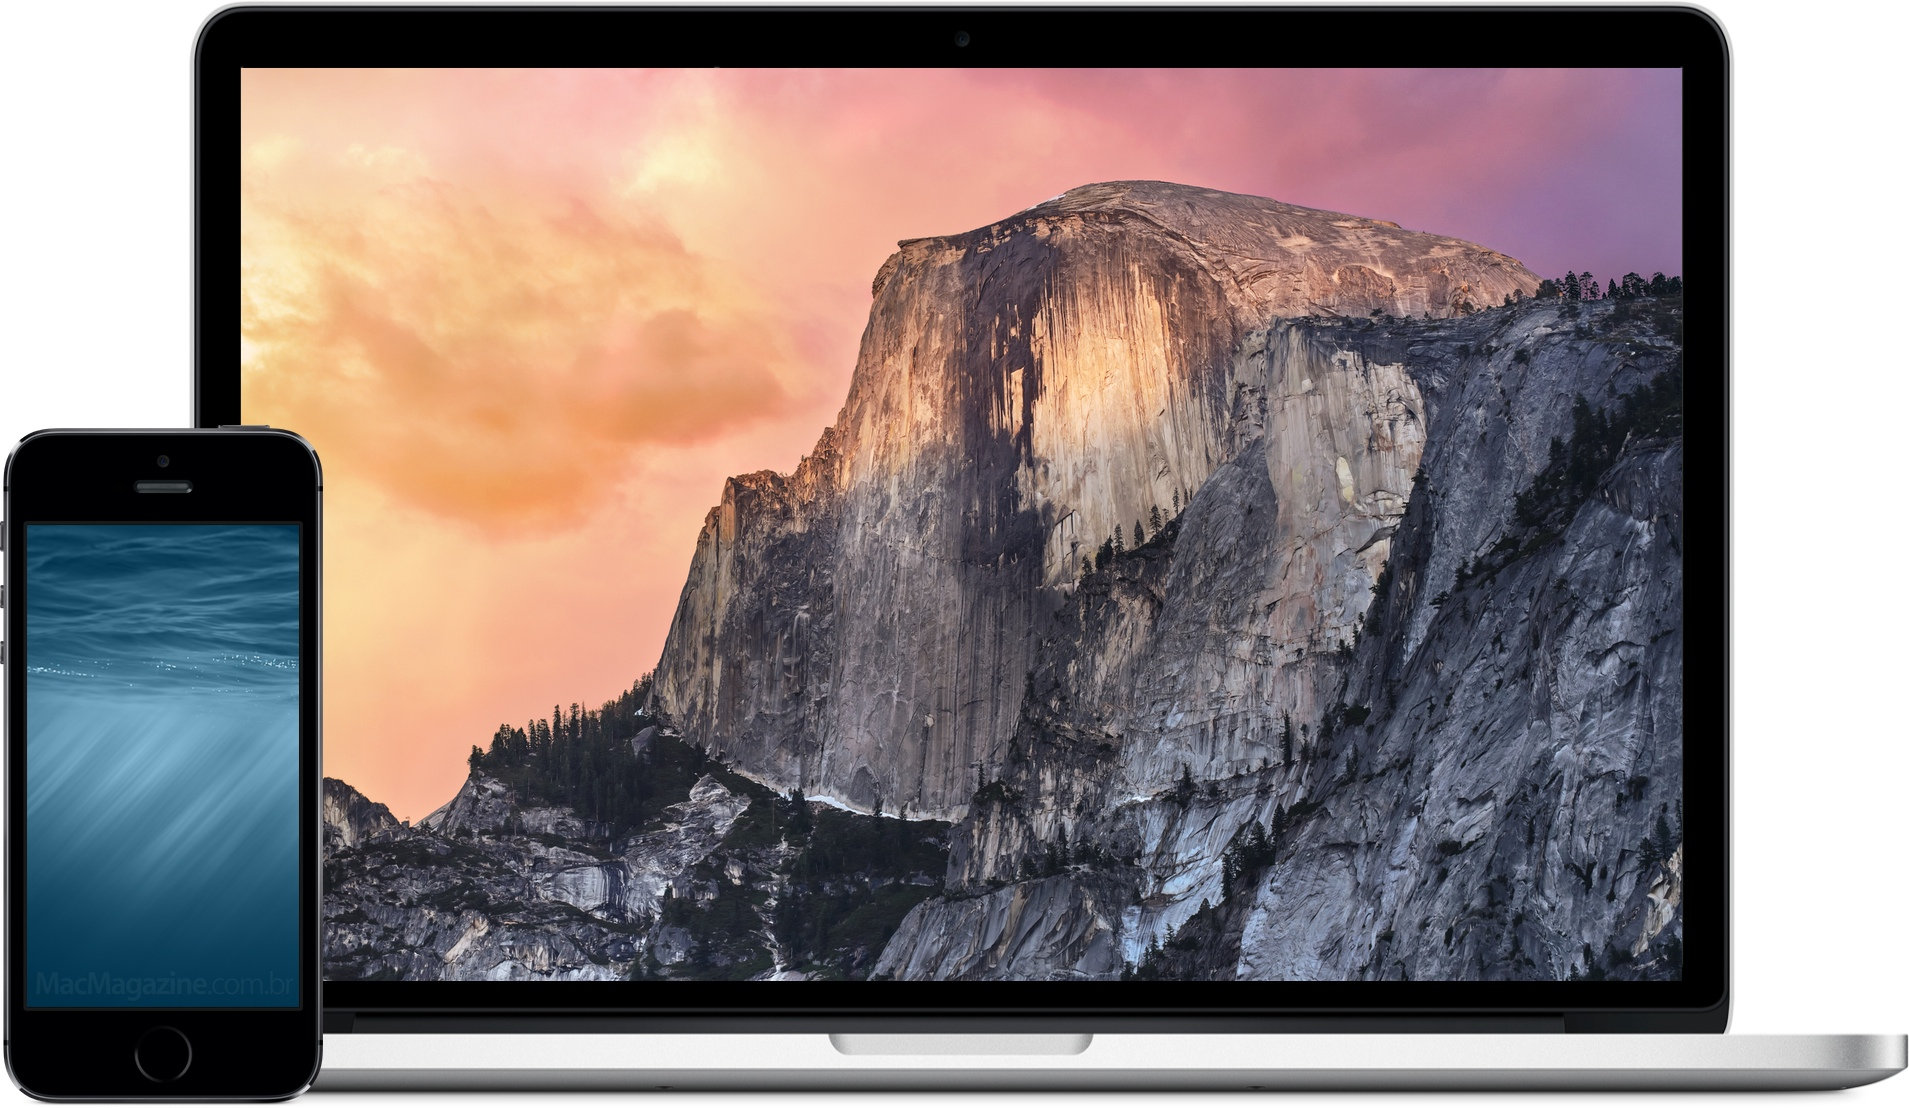 Novos wallpapers da Apple (iOS 8 e OS X Yosemite)